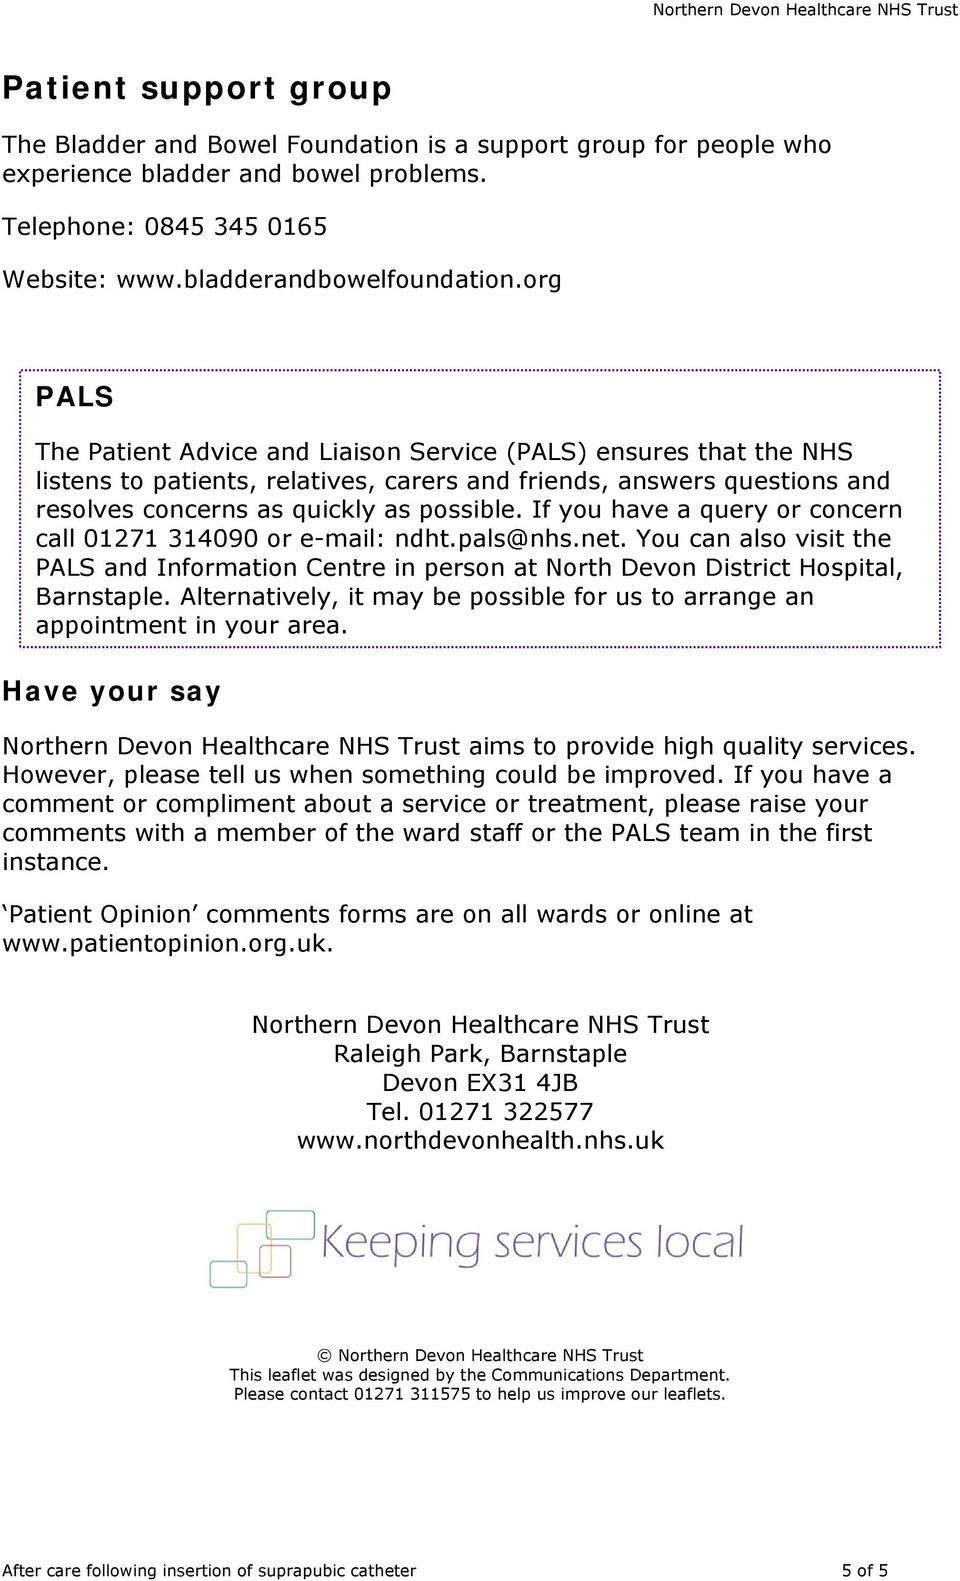 If you have a query or concern call 01271 314090 or e-mail: ndht.pals@nhs.net. You can also visit the PALS and Information Centre in person at North Devon District Hospital, Barnstaple.